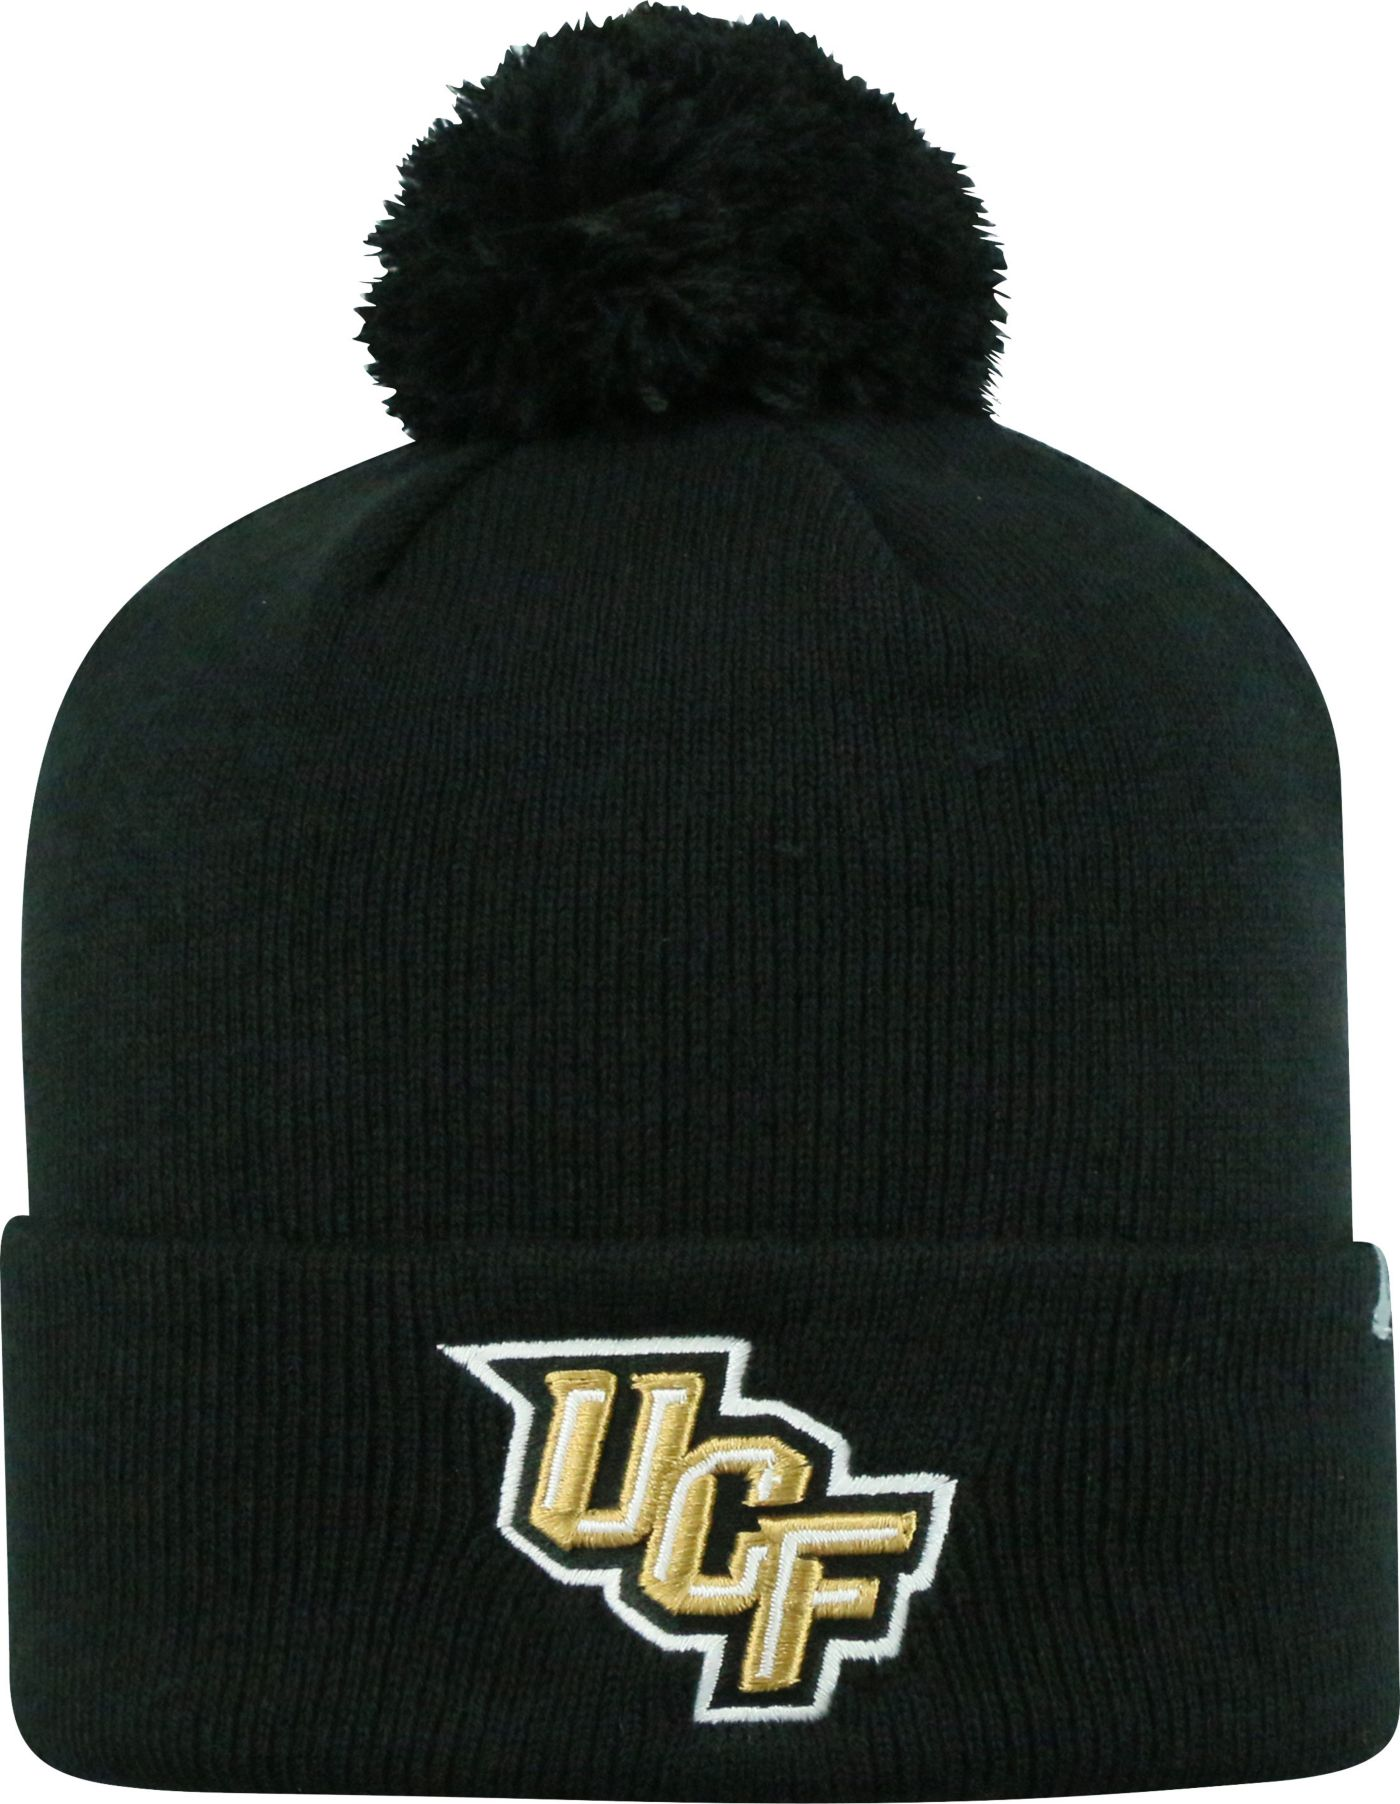 Top of the World Men's UCF Knights Black Pom Knit Beanie